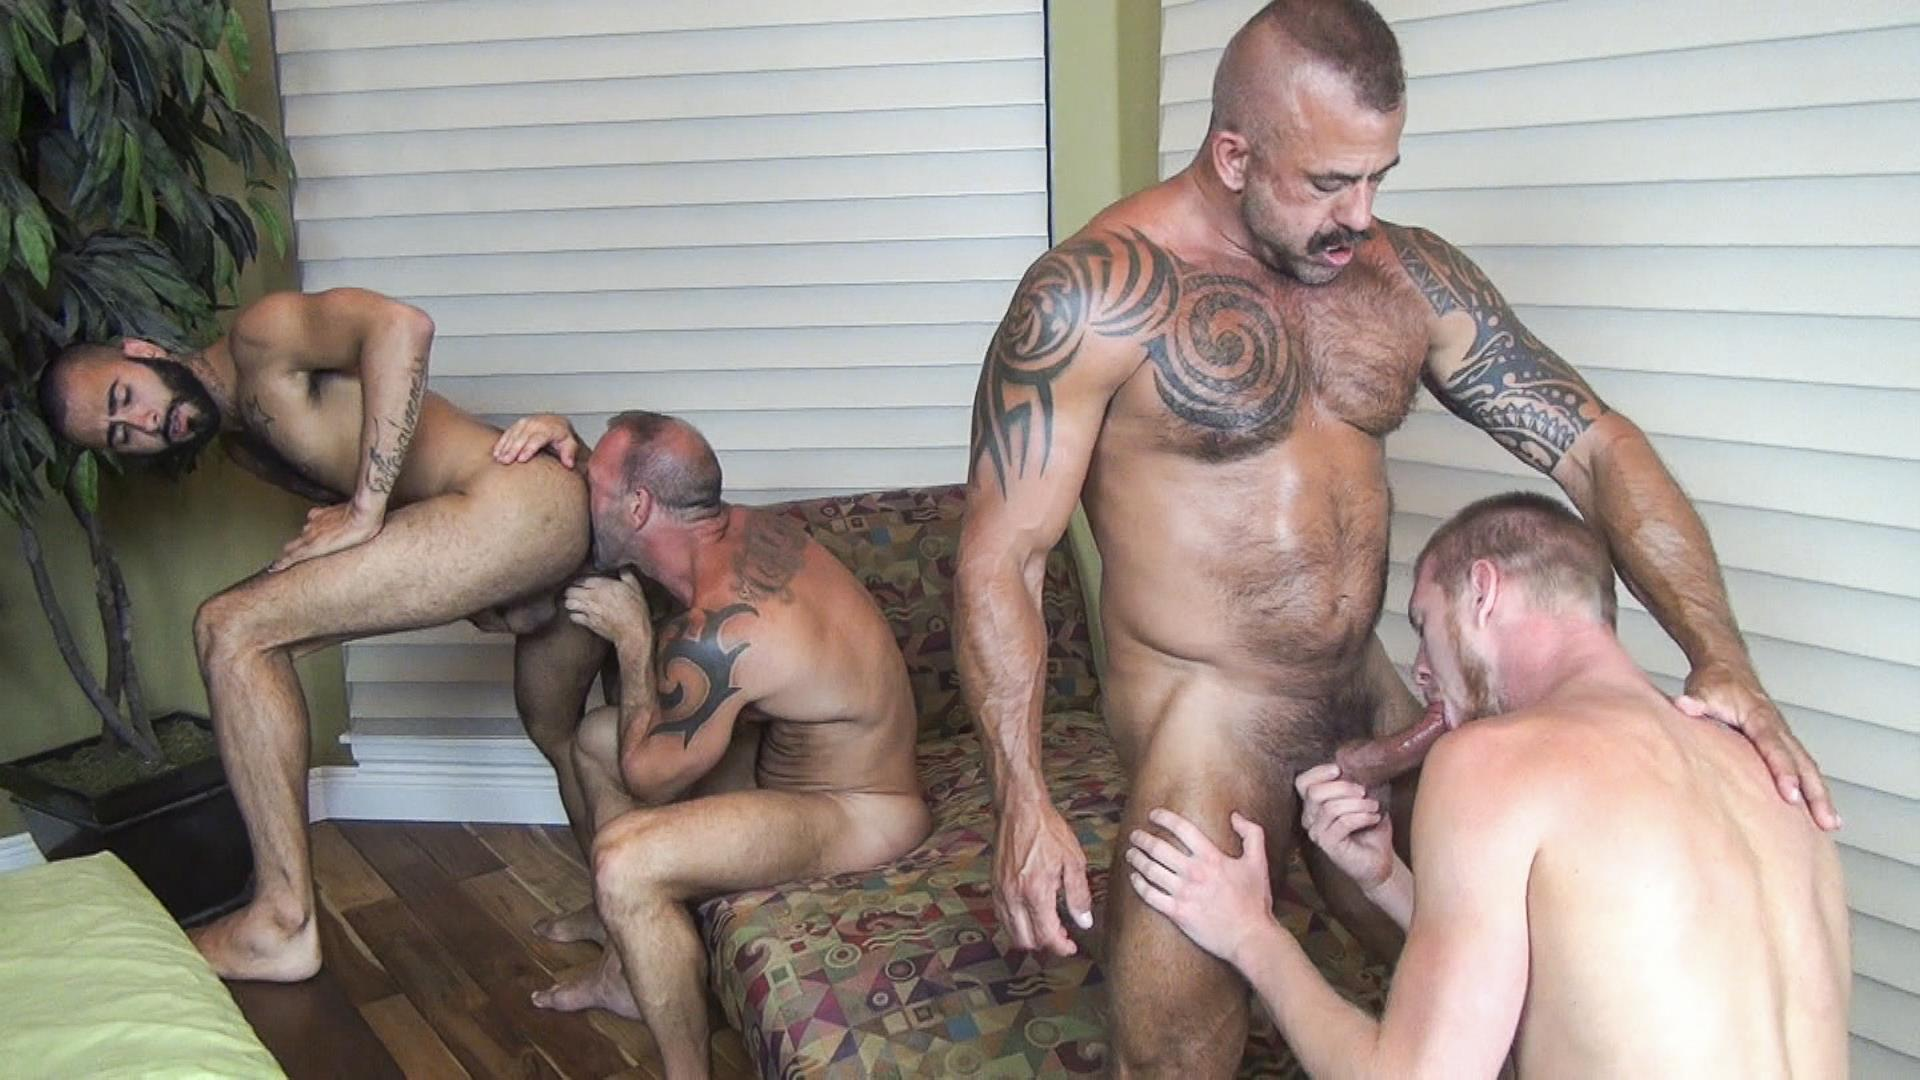 Raw-Fuck-Club-Vic-Rocco-and-Rikk-York-and-Billy-Warren-and-Job-Galt-Bareback-Daddy-Amateur-Gay-Porn-06 Four Hairy Muscle Daddies In A Bareback Fuck Fest Orgy